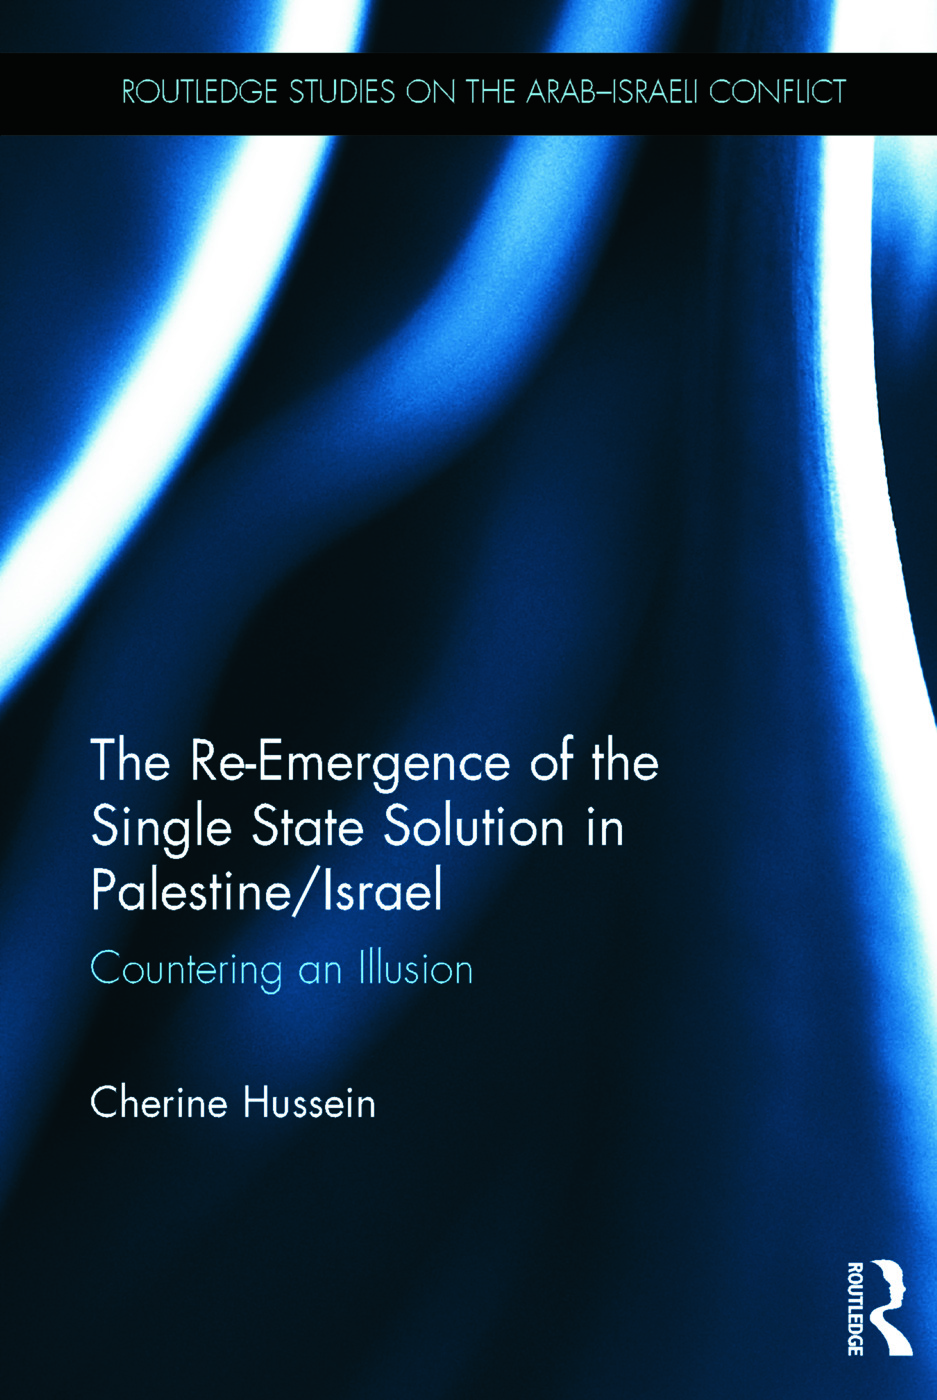 The Re-Emergence of the Single State Solution in Palestine/Israel: Countering an Illusion book cover